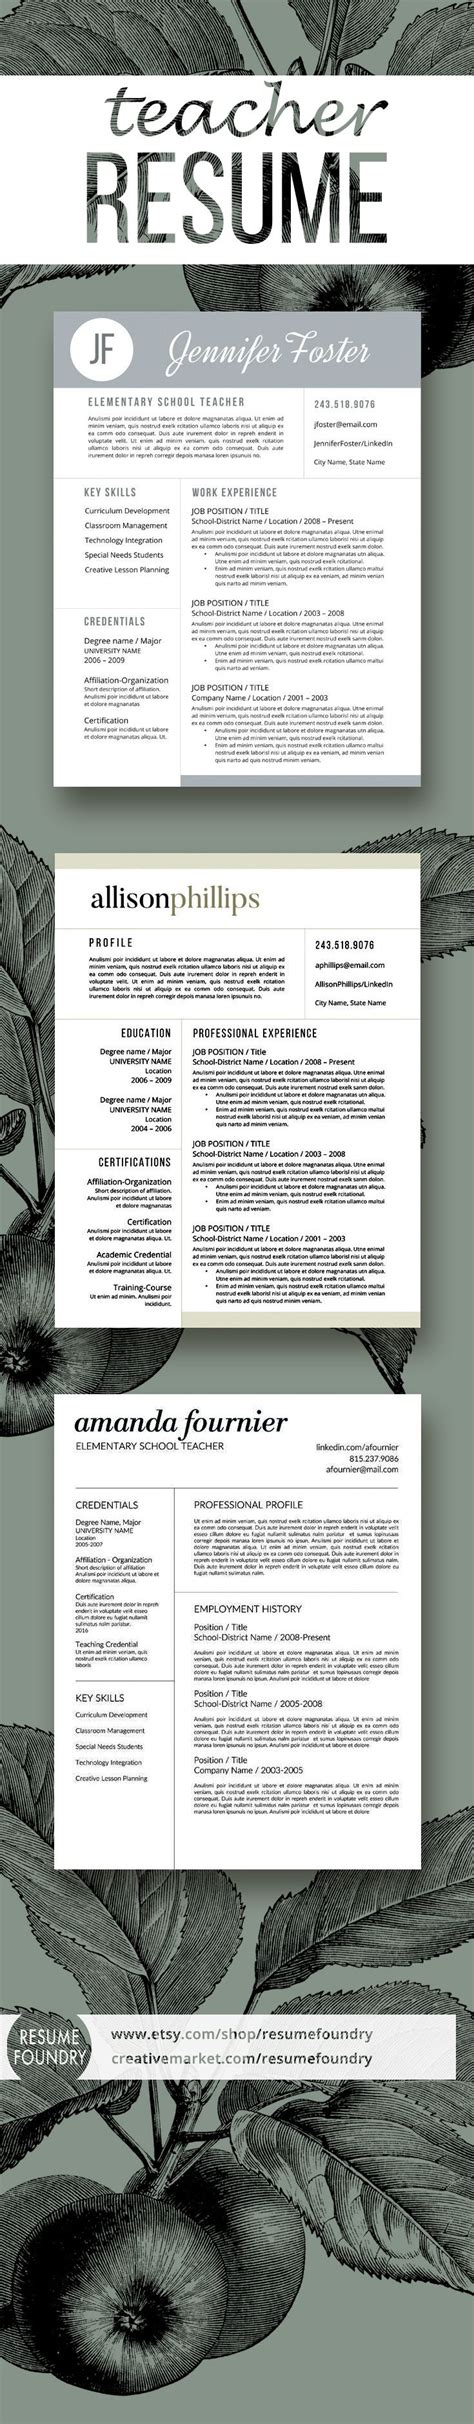 good resume formats 0 ow to choose the best format sample